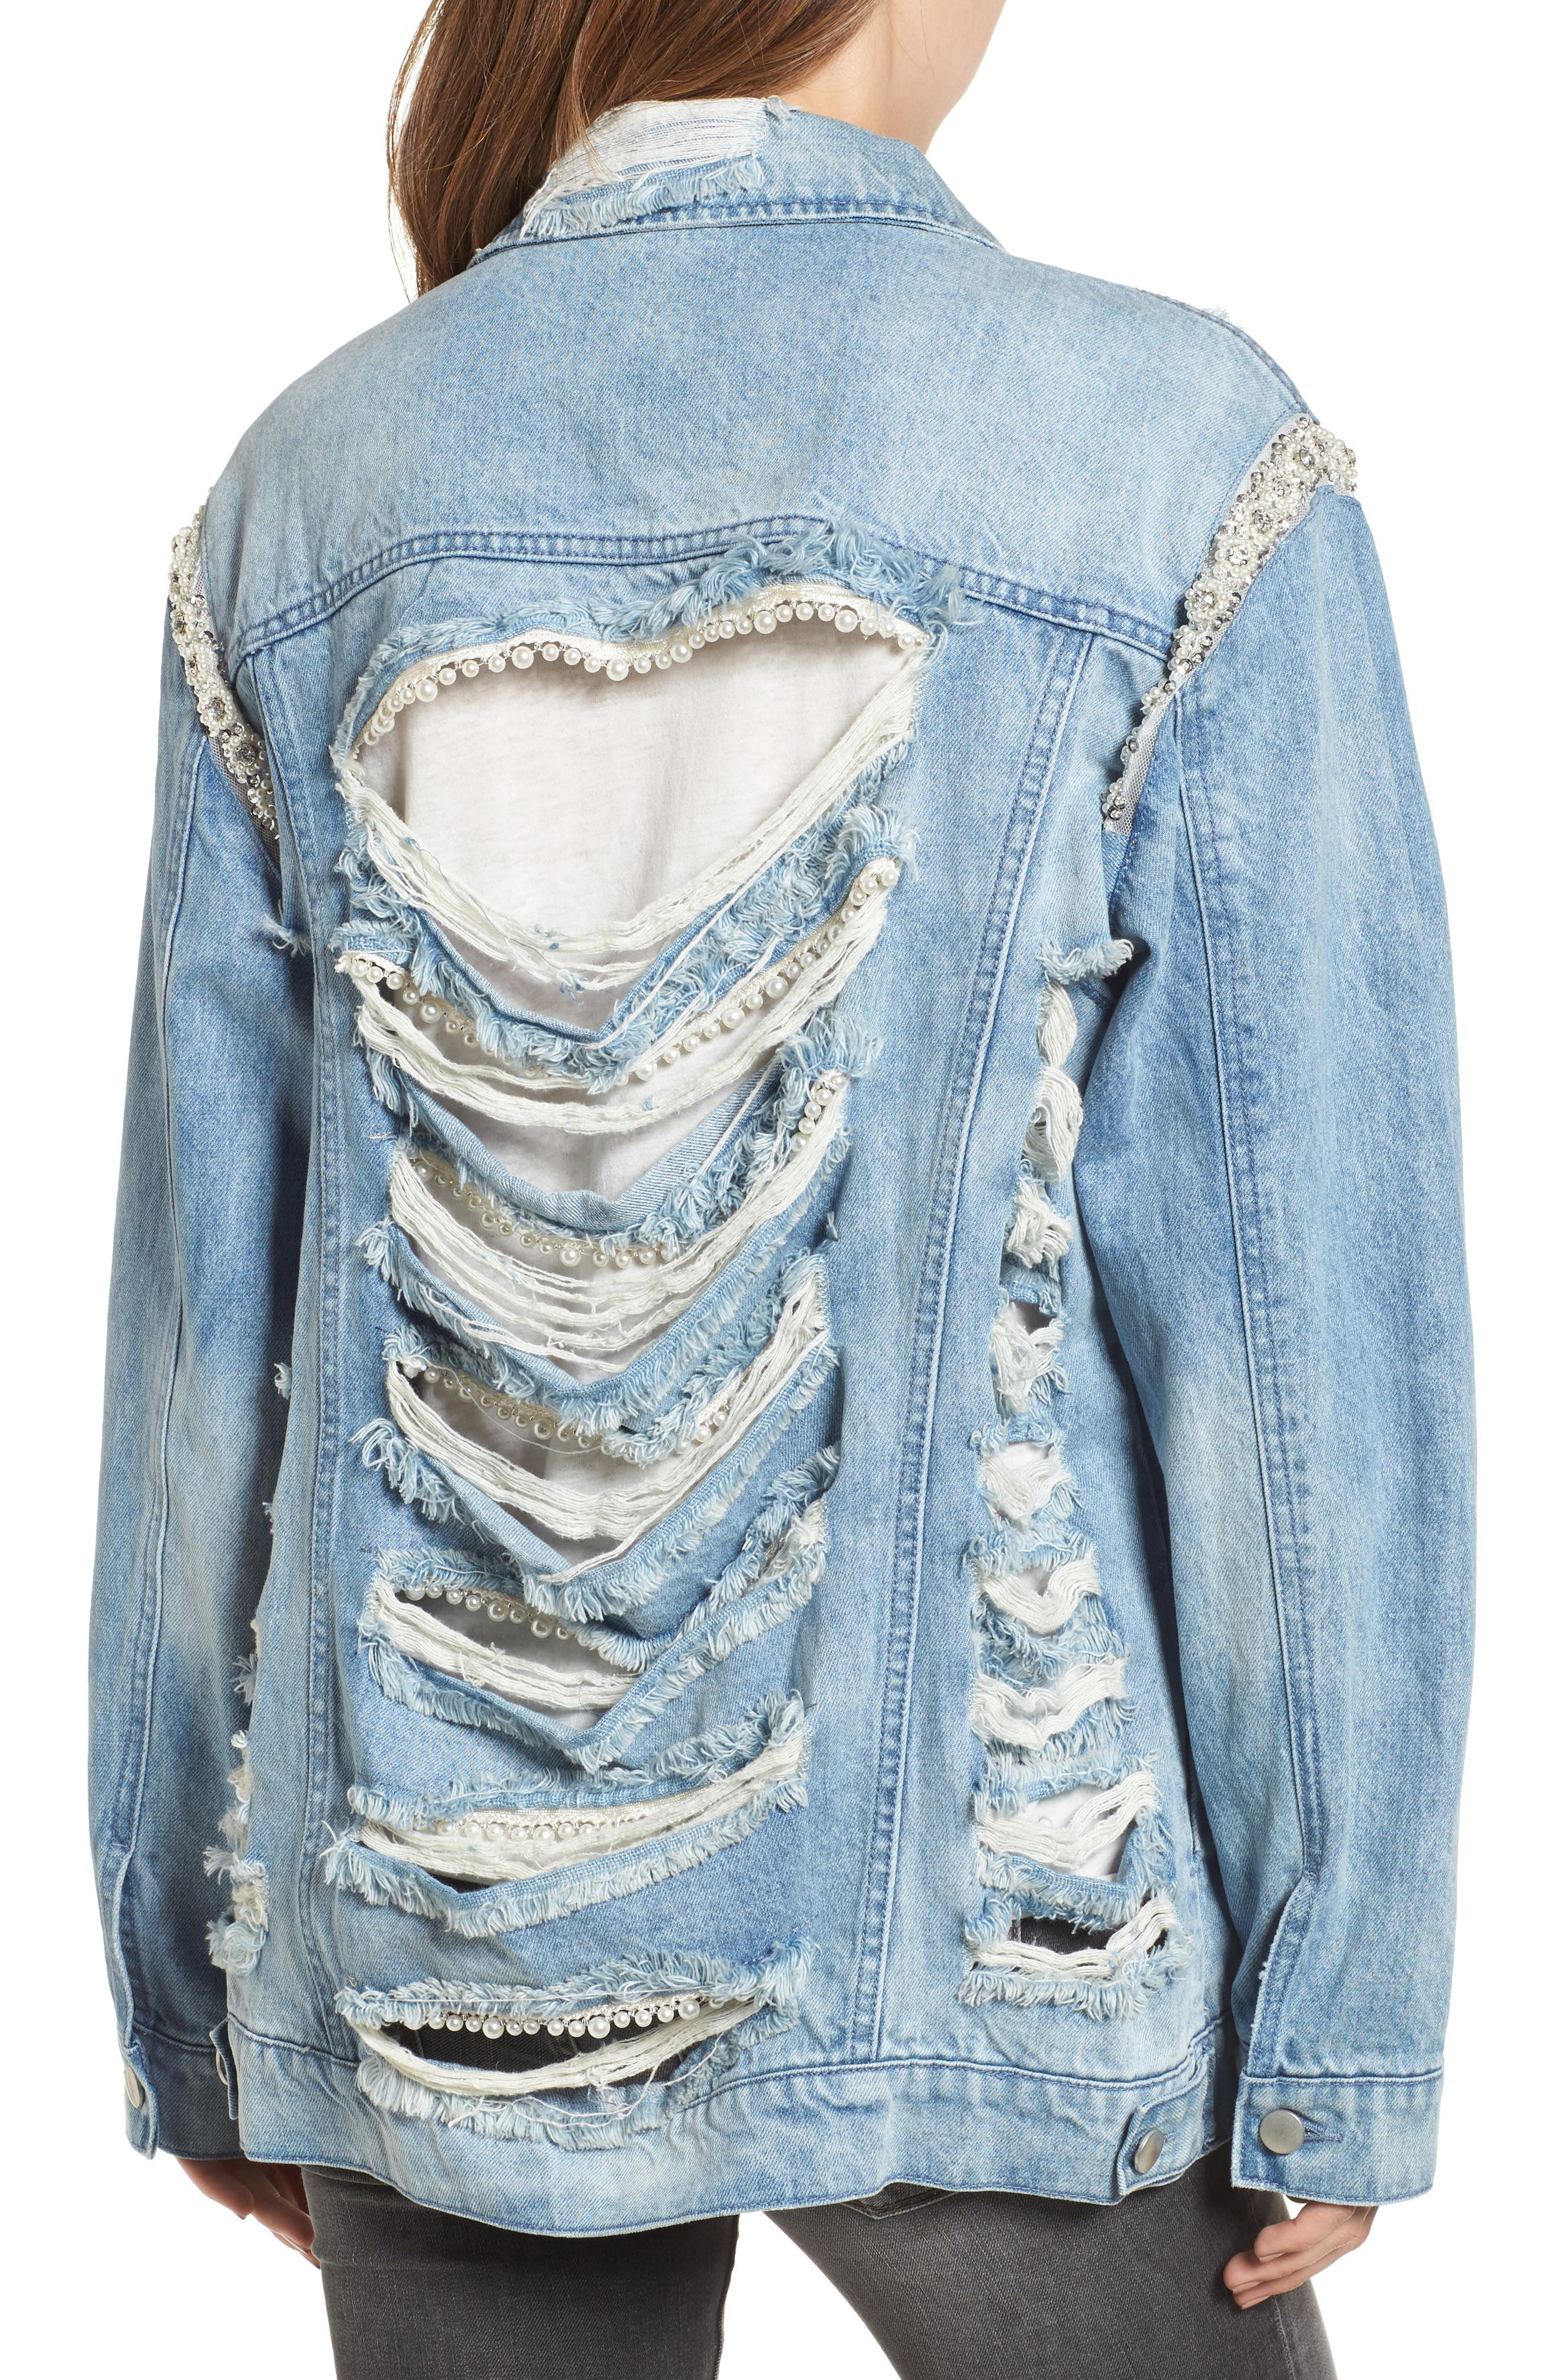 Embellished Ripped Denim Jacket,                             Main thumbnail 1, color,                             Blue W/ Pearls & Diamonds